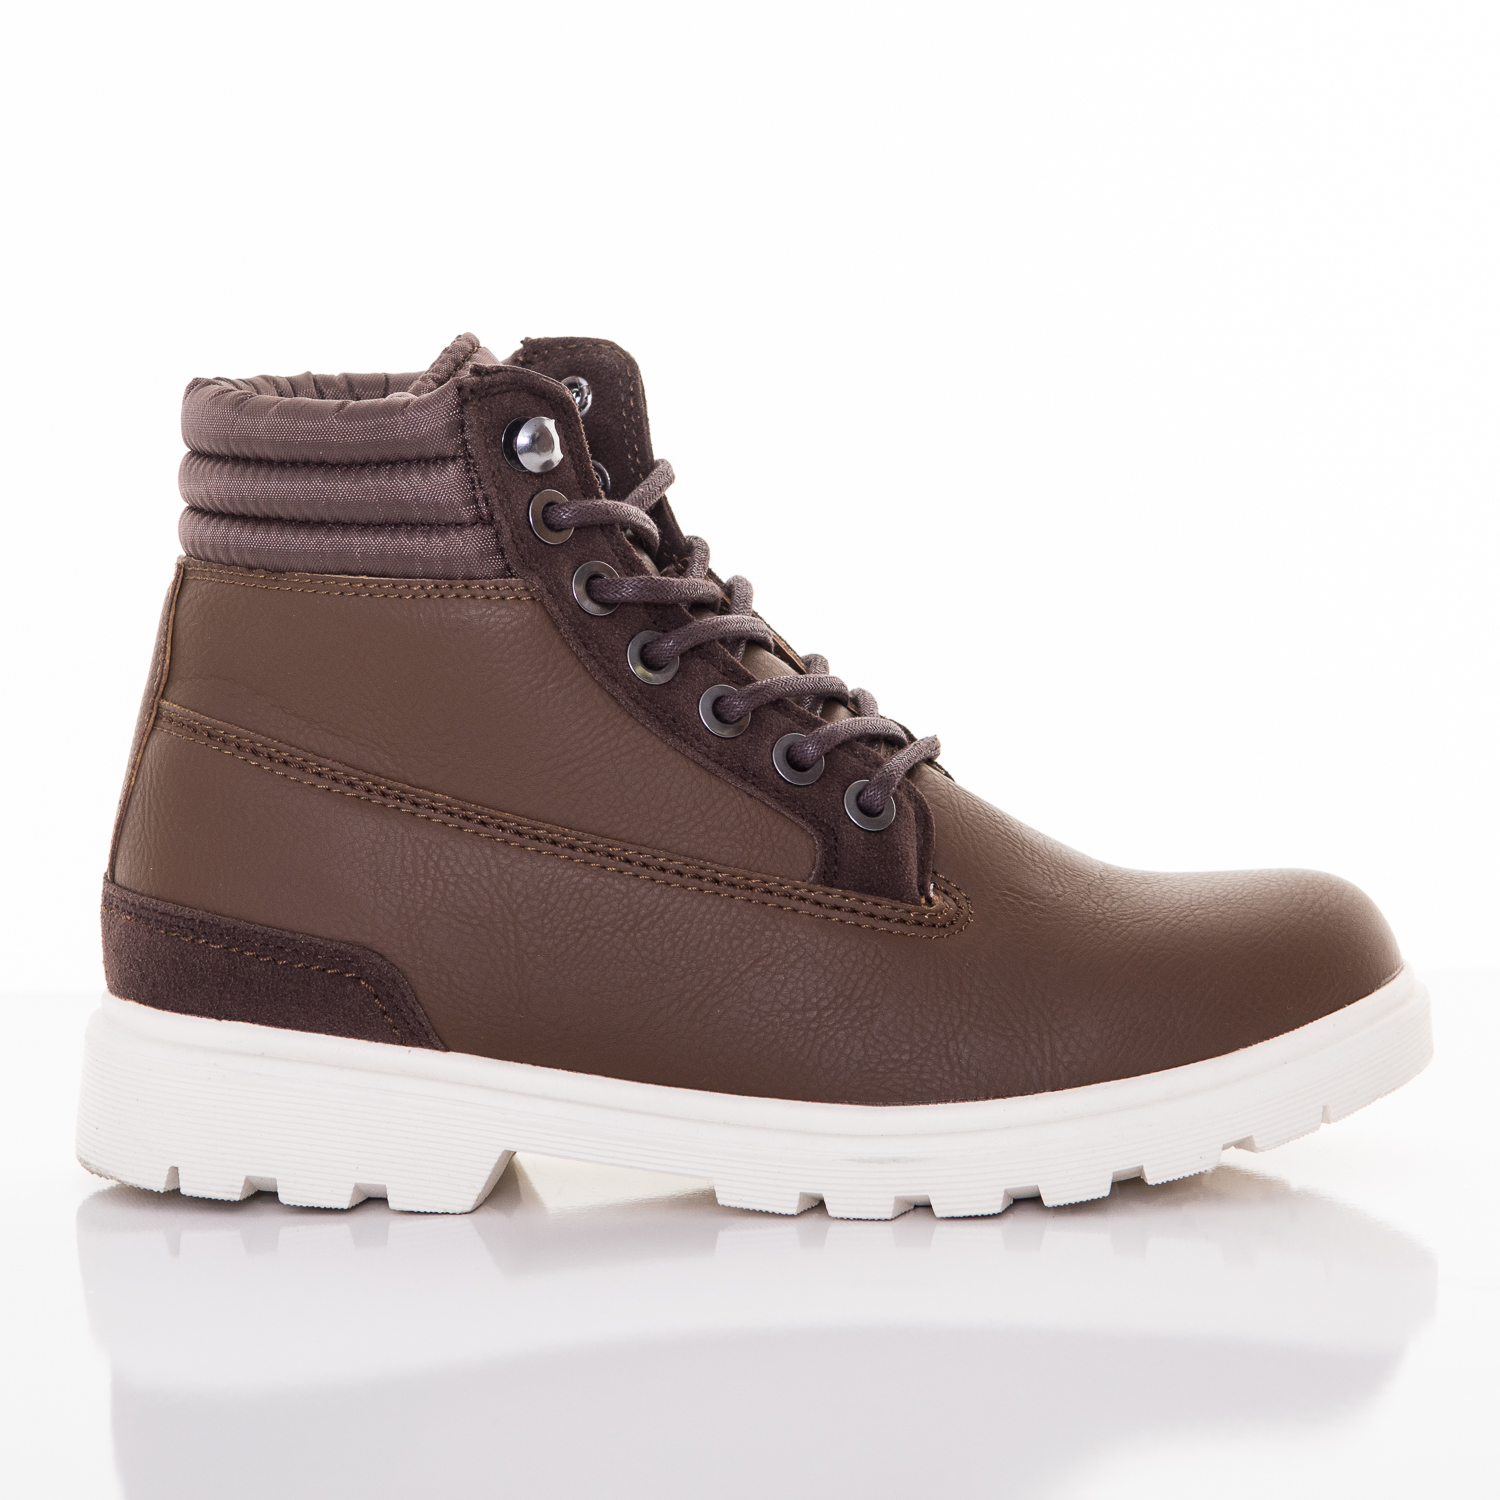 Zimná obuv Urban Classics Winter Boots Brown Darkbrown 41